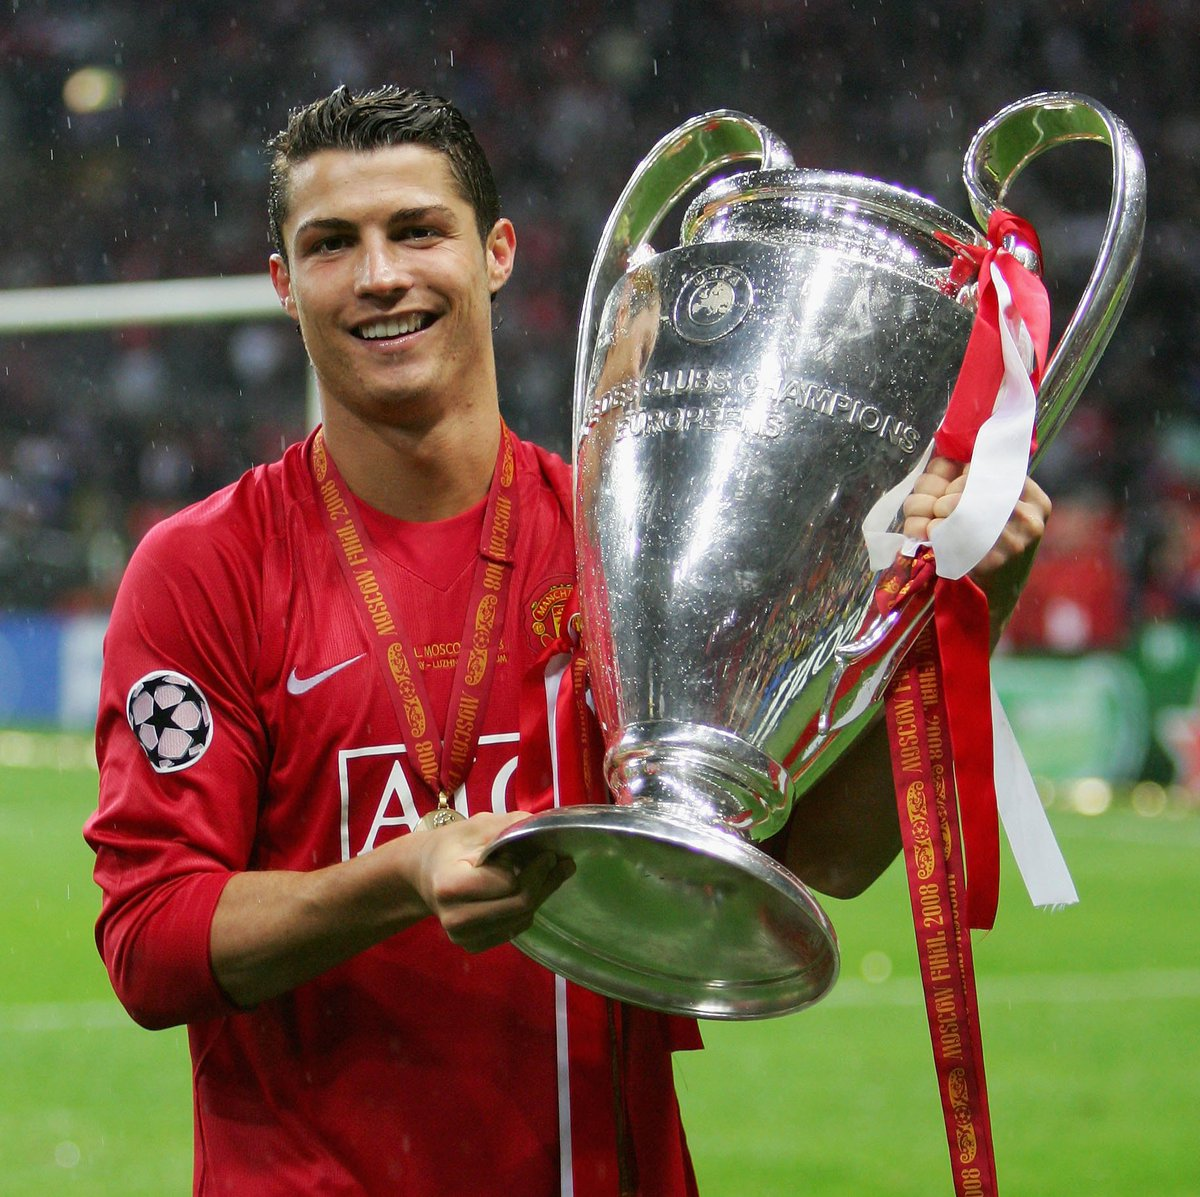 Cristiano Ronaldo won his first #UCL title #OTD 11 years ago. The rest is history...#UCLfinal